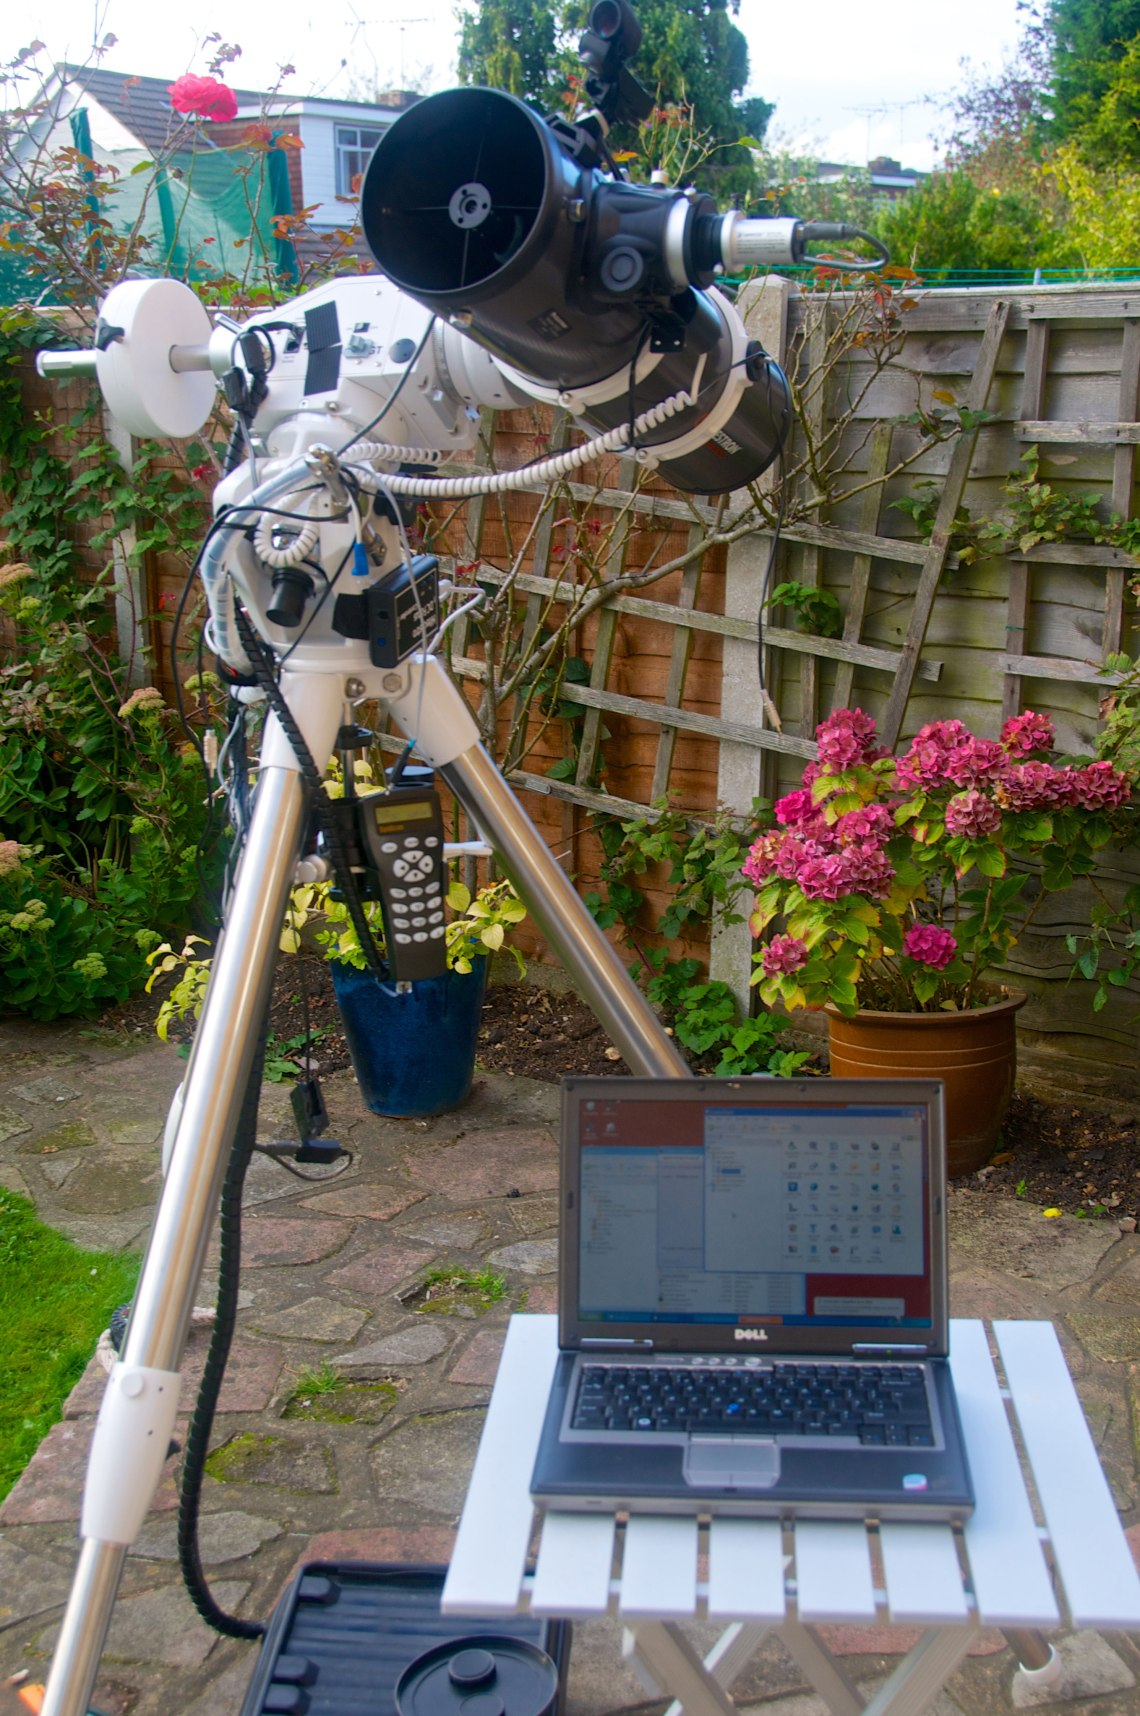 All set up and ready for a night of lunar imaging. Credit Mike Barrett